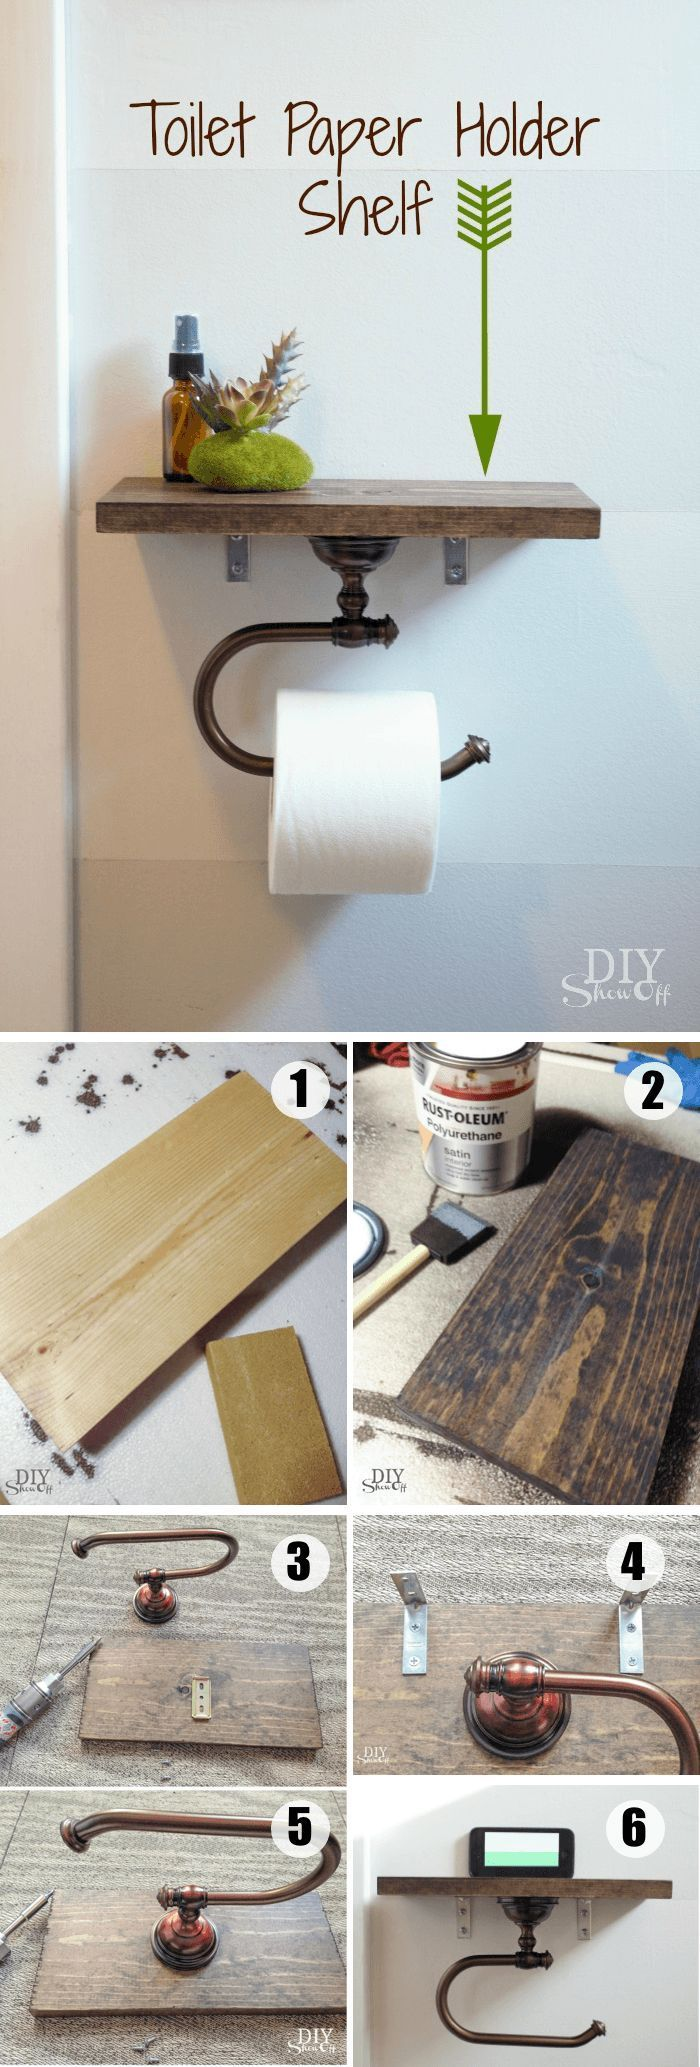 id e d coration salle de bain diy toilet paper holder with shelf use this clever and. Black Bedroom Furniture Sets. Home Design Ideas